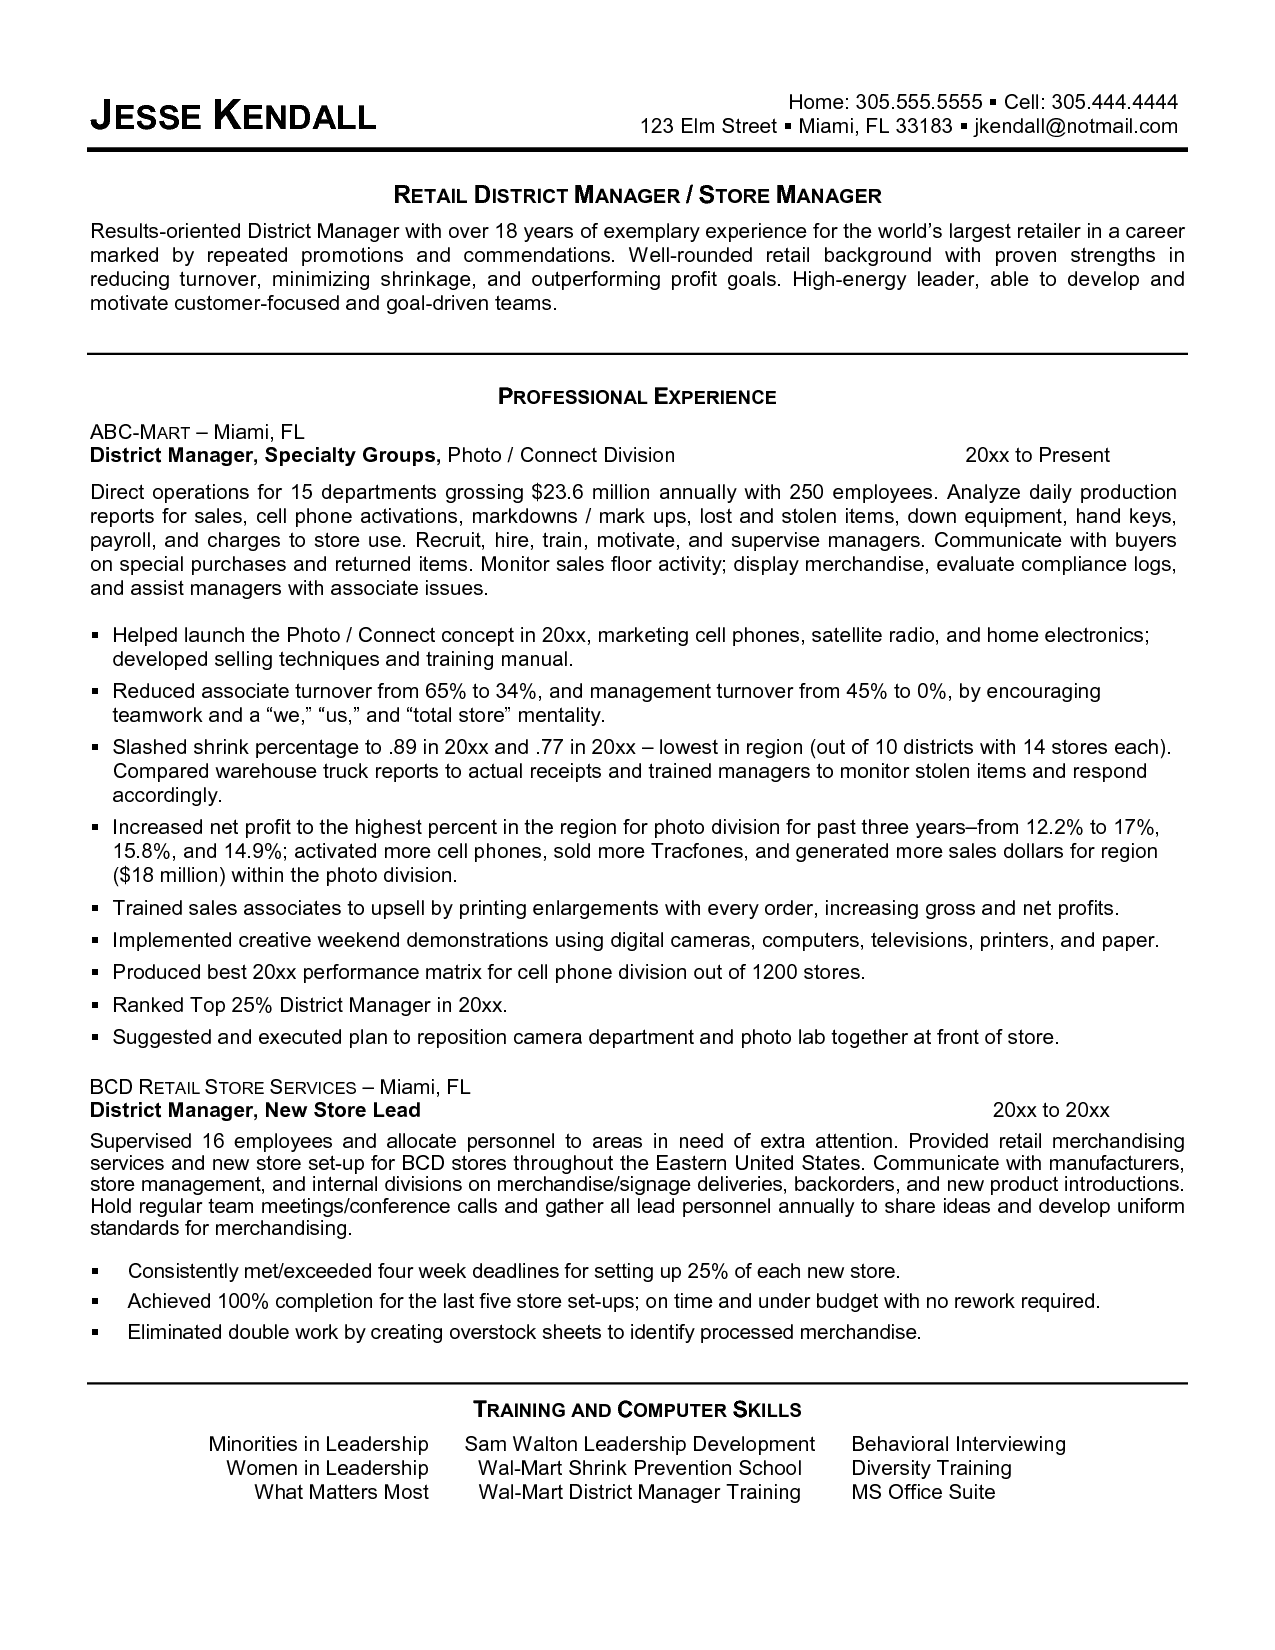 Pin by postresumeformat on Best Latest resume | Pinterest | Job ...